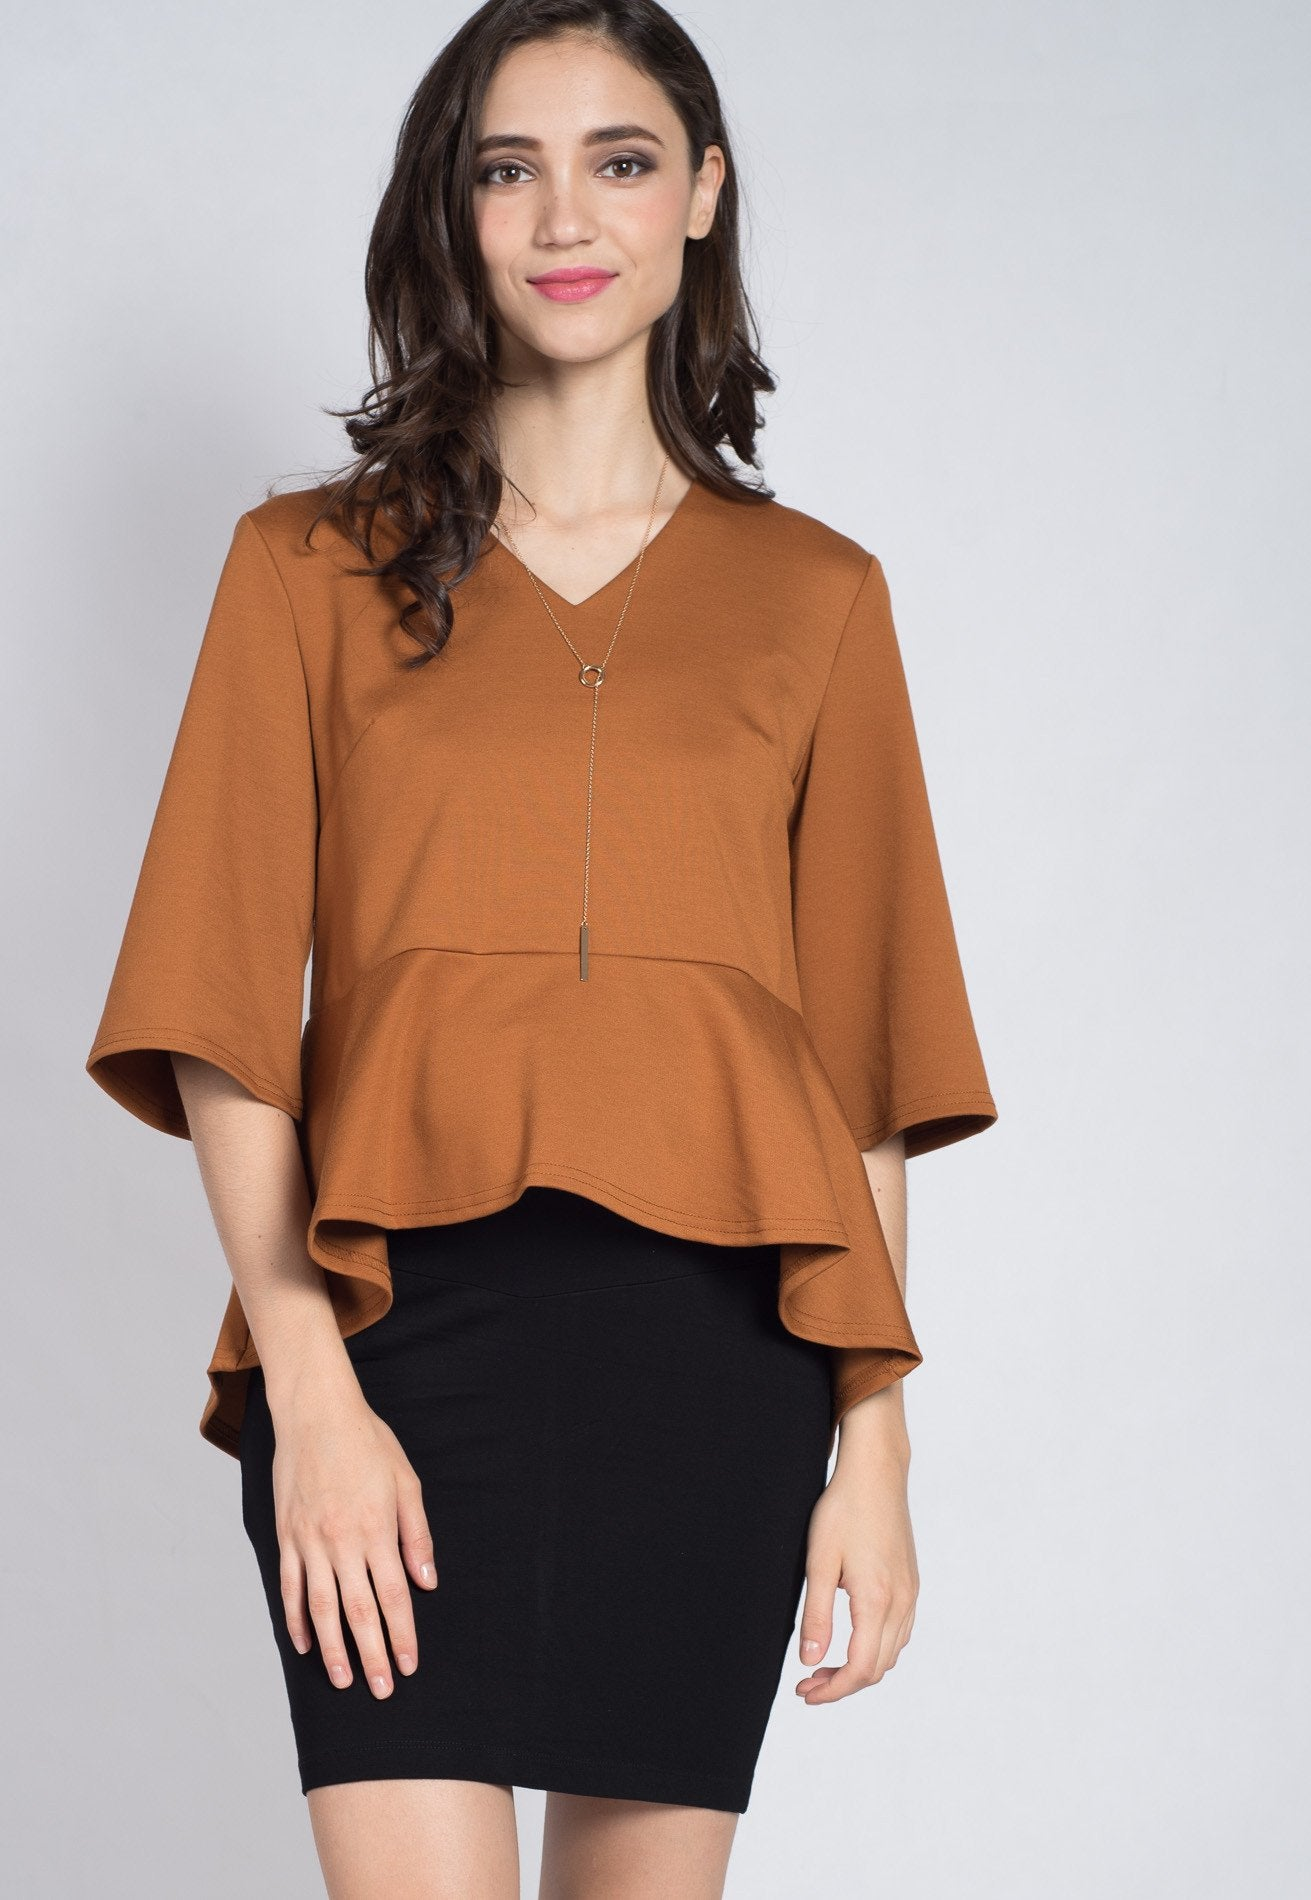 SALE Flare Sleeves Nursing Top  by Jump Eat Cry - Maternity and nursing wear